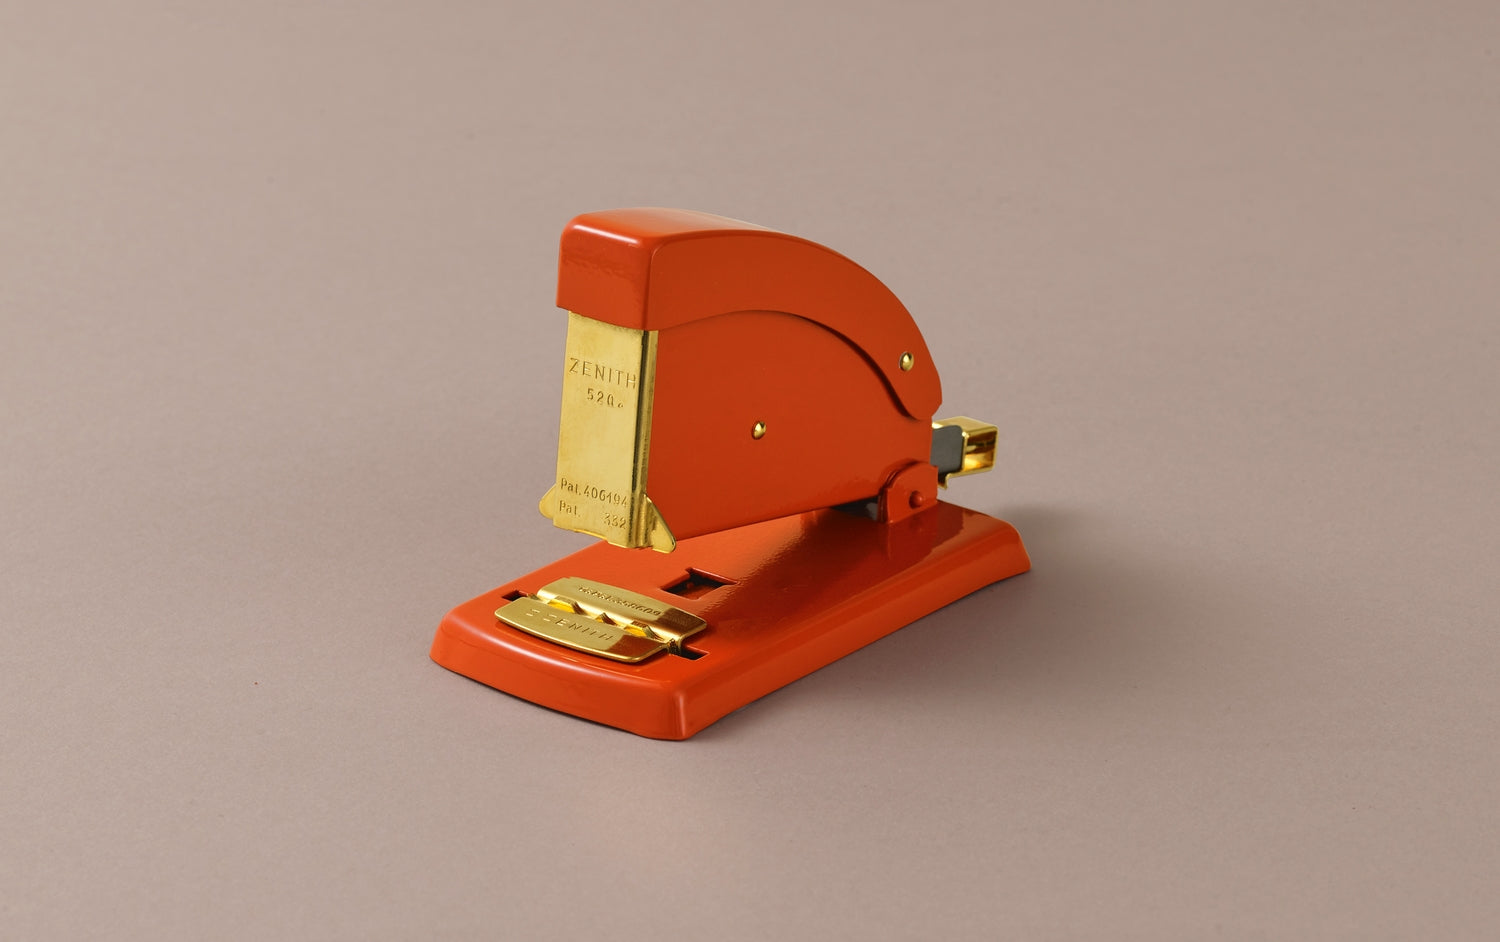 Desktop Aluminium Vermillion Red and Gold Zenith Stapler